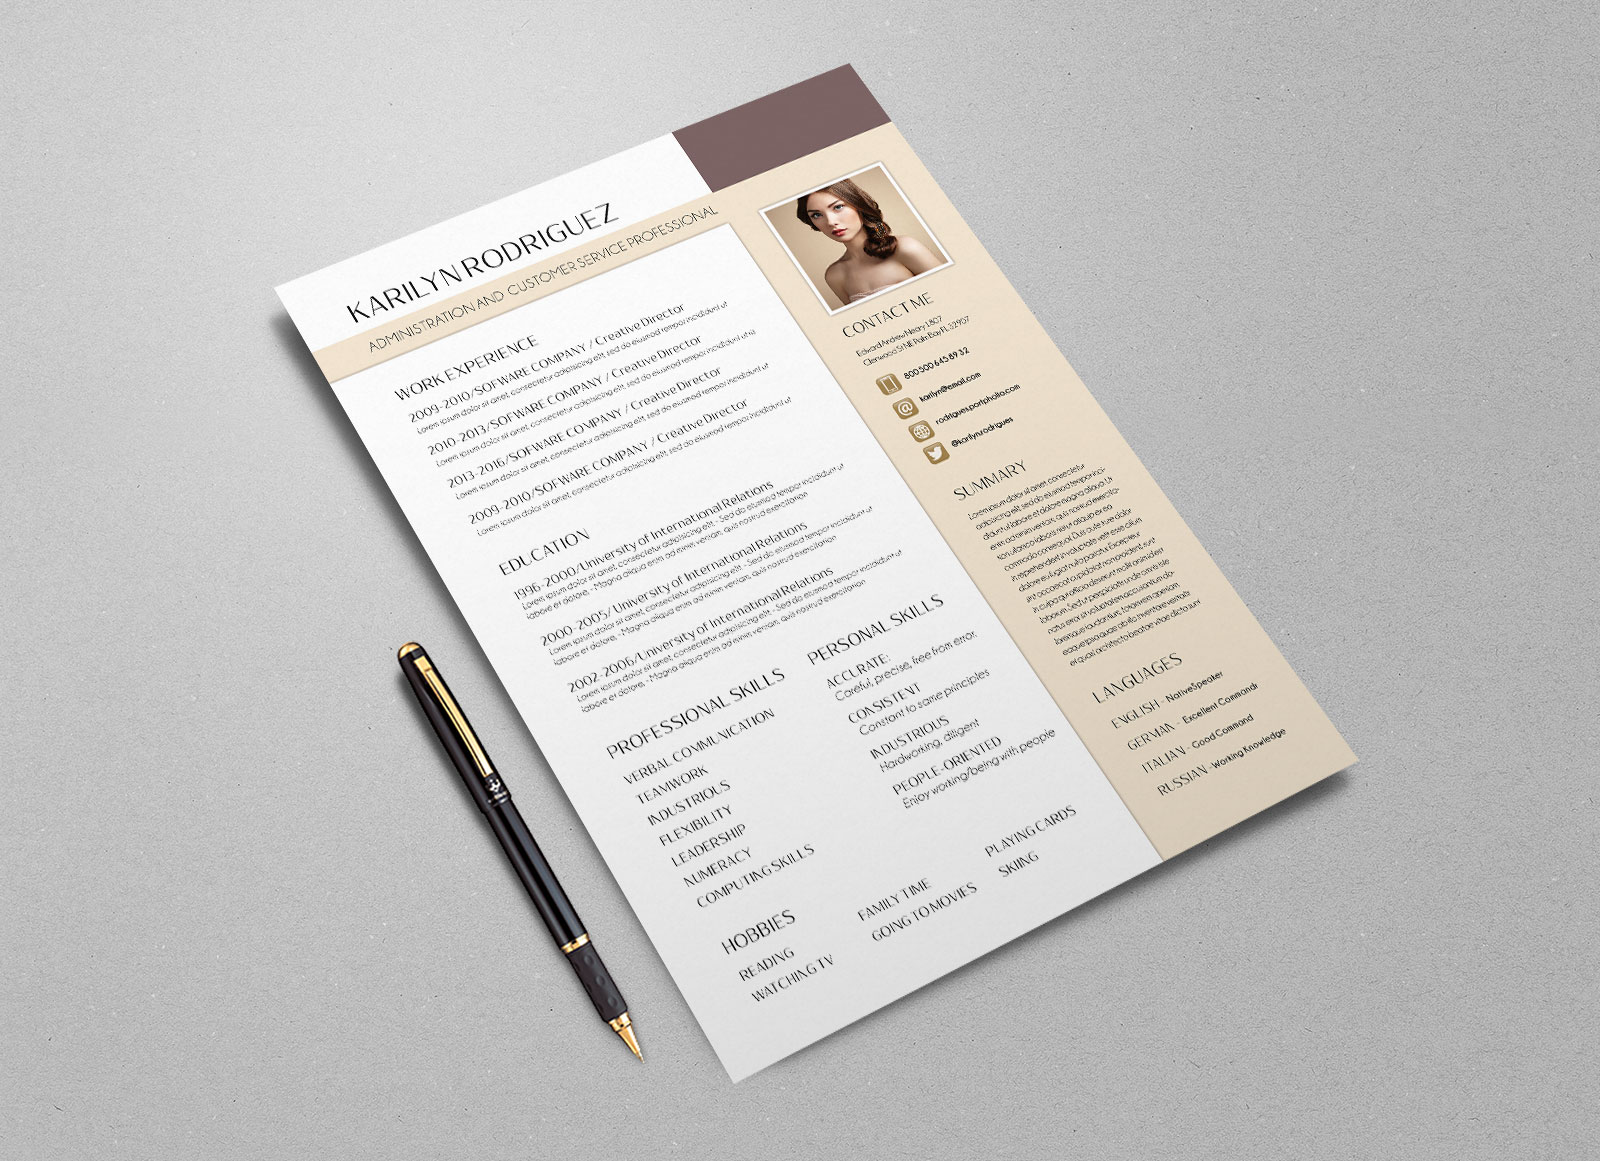 Free-PSD-CV-Template-for-Front-Desk-Officer-&-Customer-Service-Professional-3